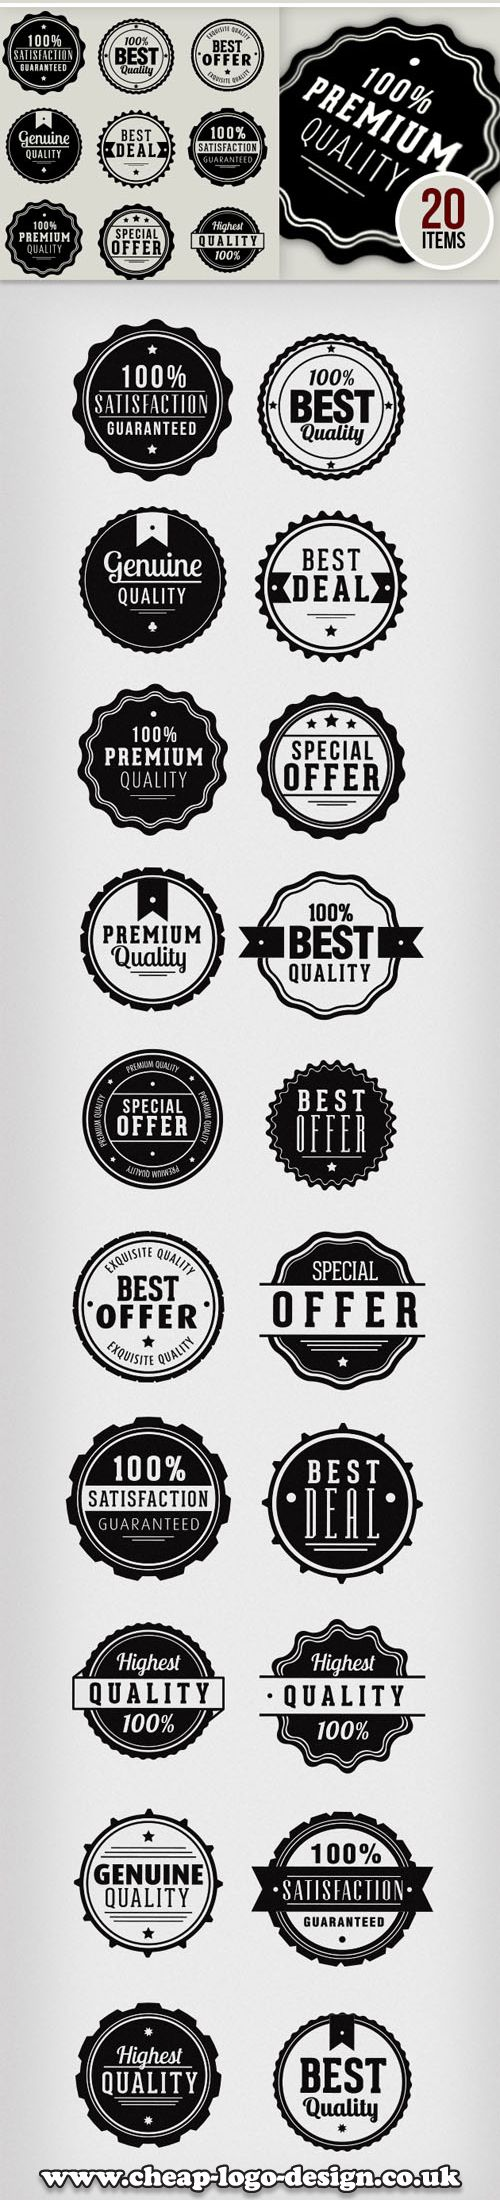 quality and special offer logo designs #logodesign #qualitylogodesign www.cheap-logo-design.co.uk